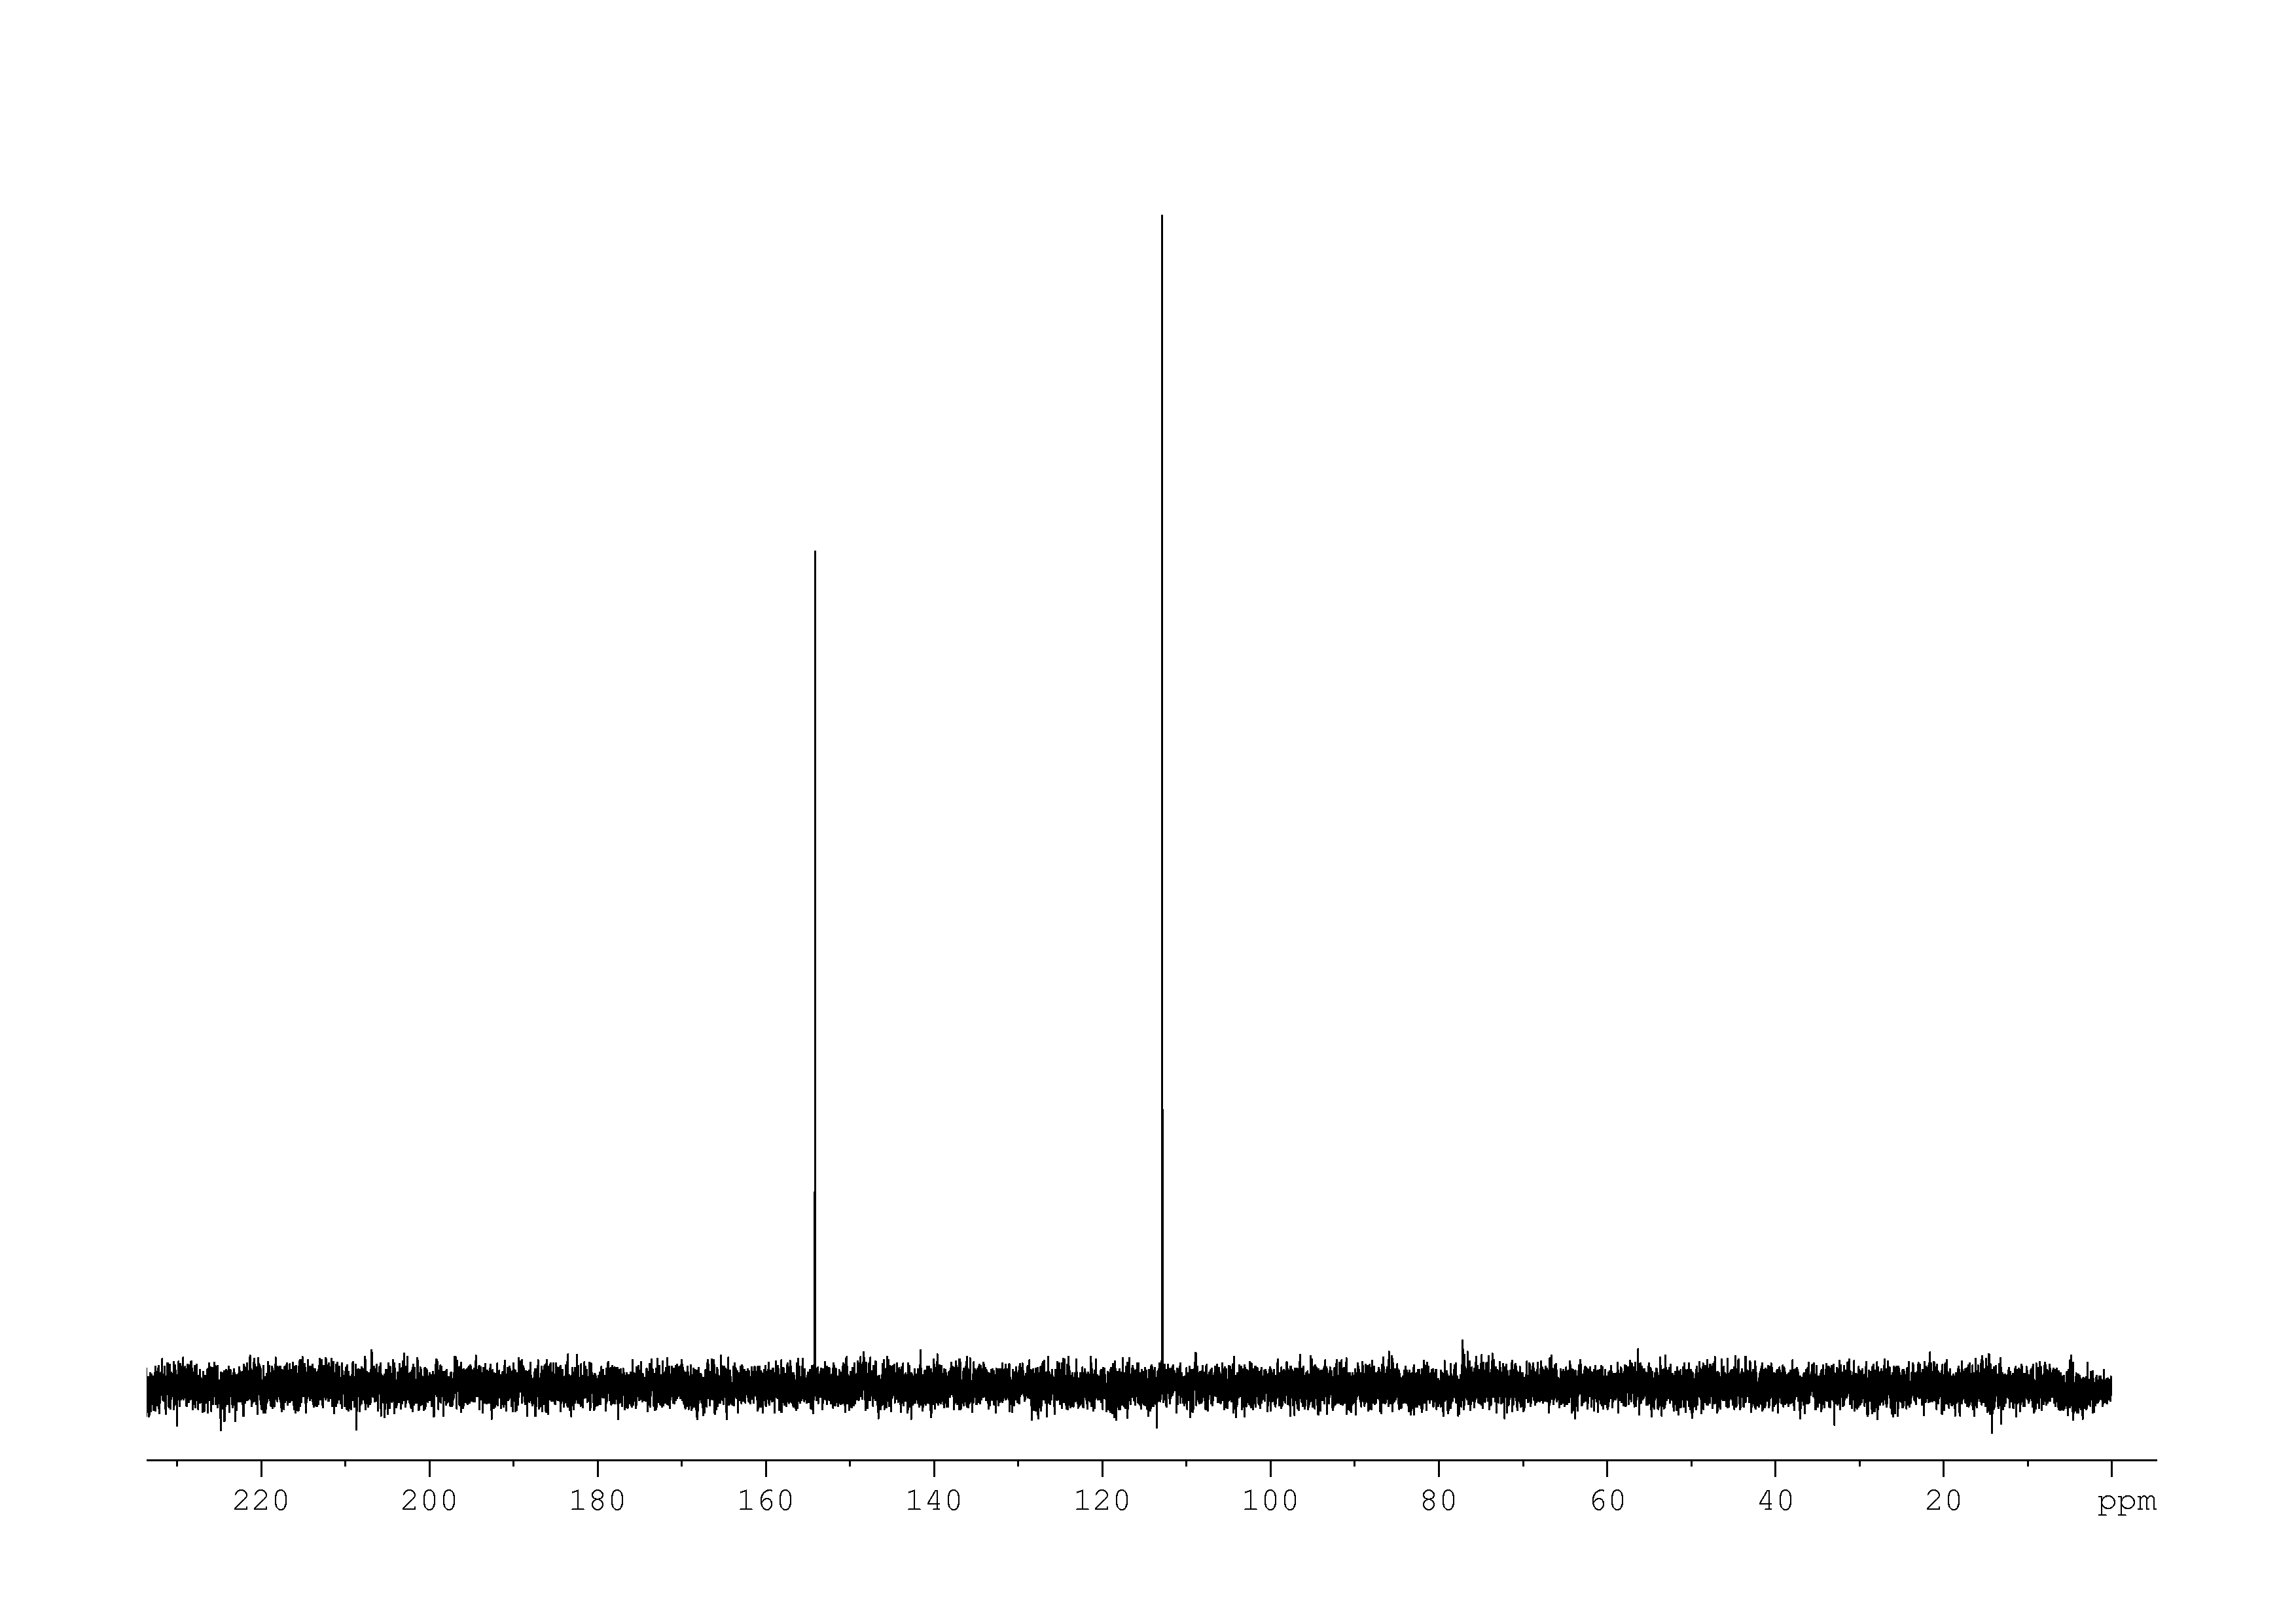 1D DEPT90, n/a spectrum for 3-hydroxy-2-methyl-4-pyrone